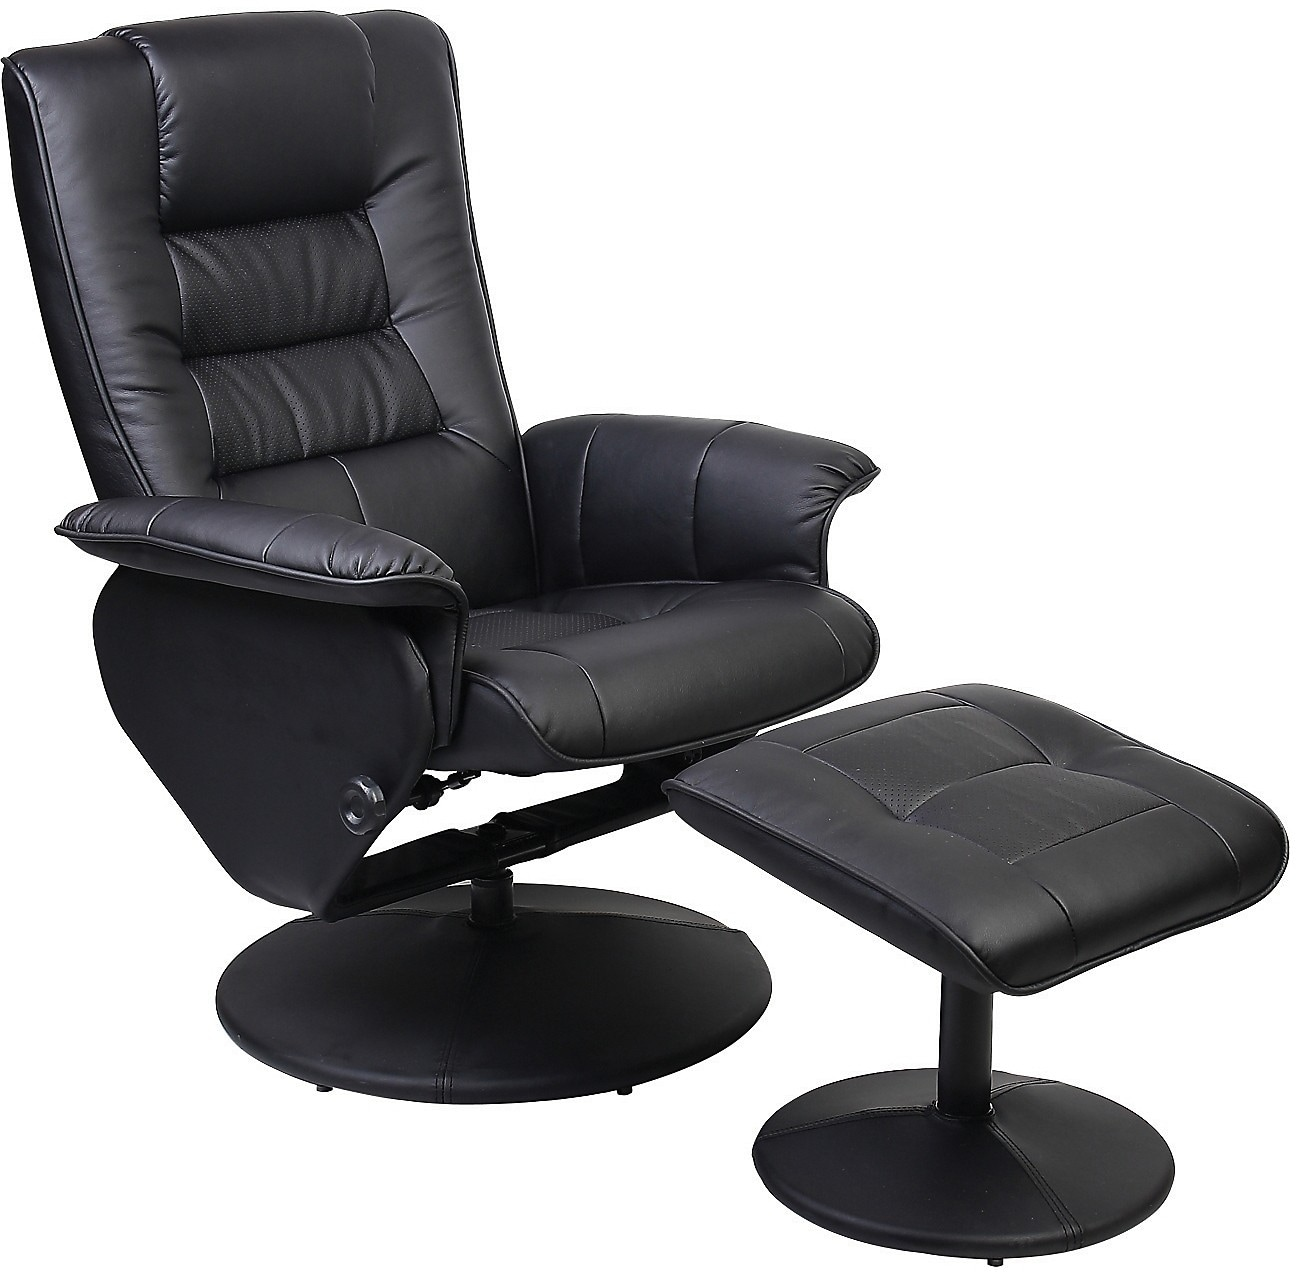 Reclining Chair And Ottoman Duncan Reclining Chair W Ottoman Black The Brick